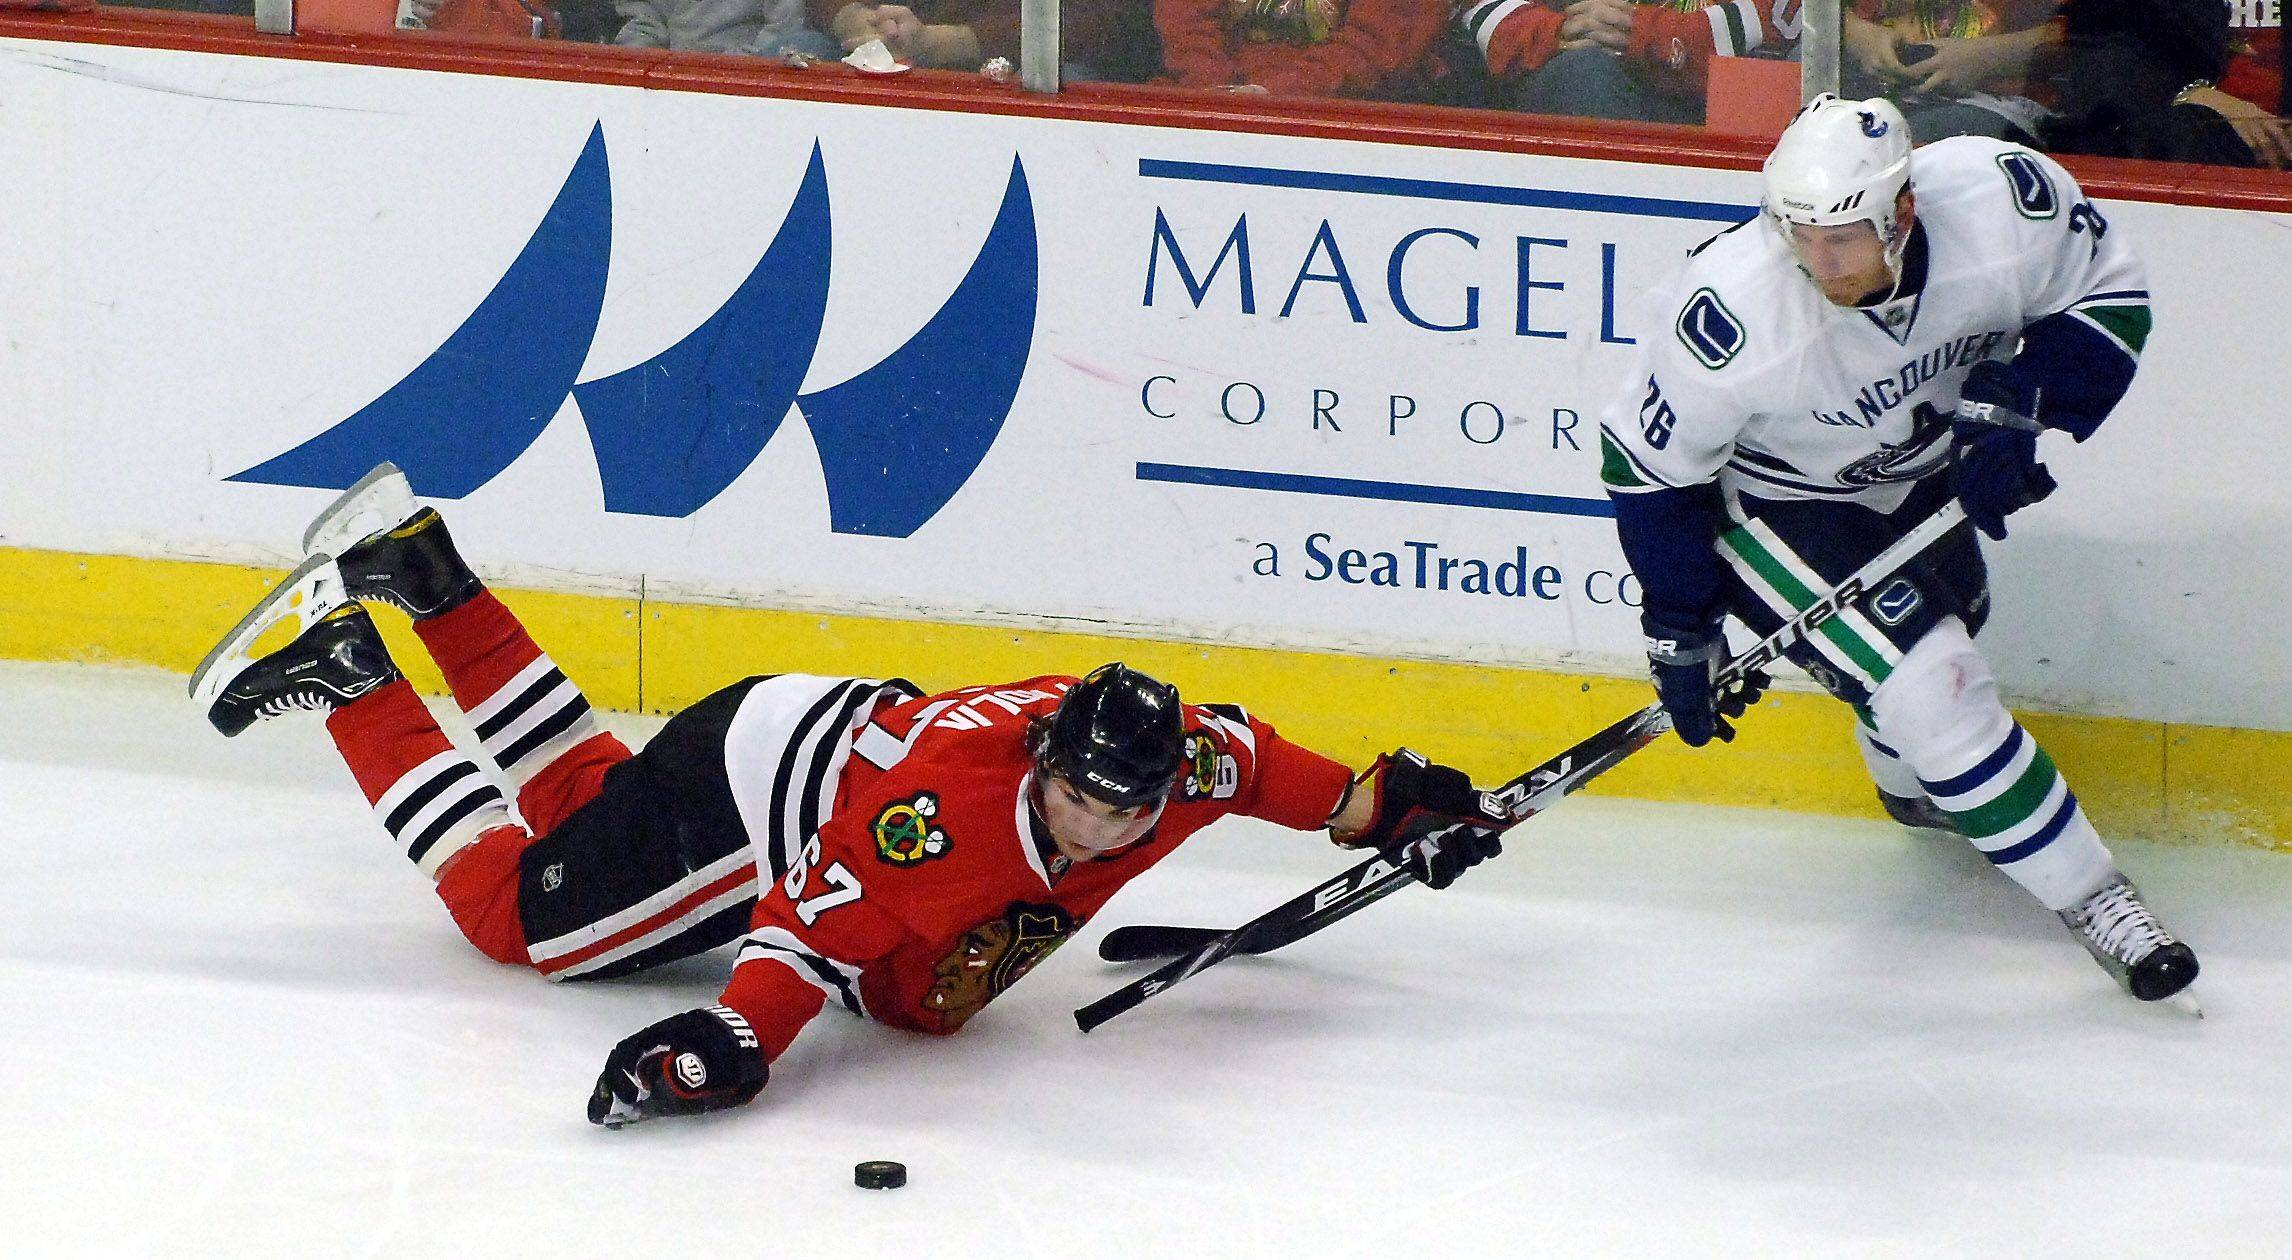 Chicago Blackhawks center Michael Frolik goes down battling Vancouver Canucks right wing Mikael Samuelsson.